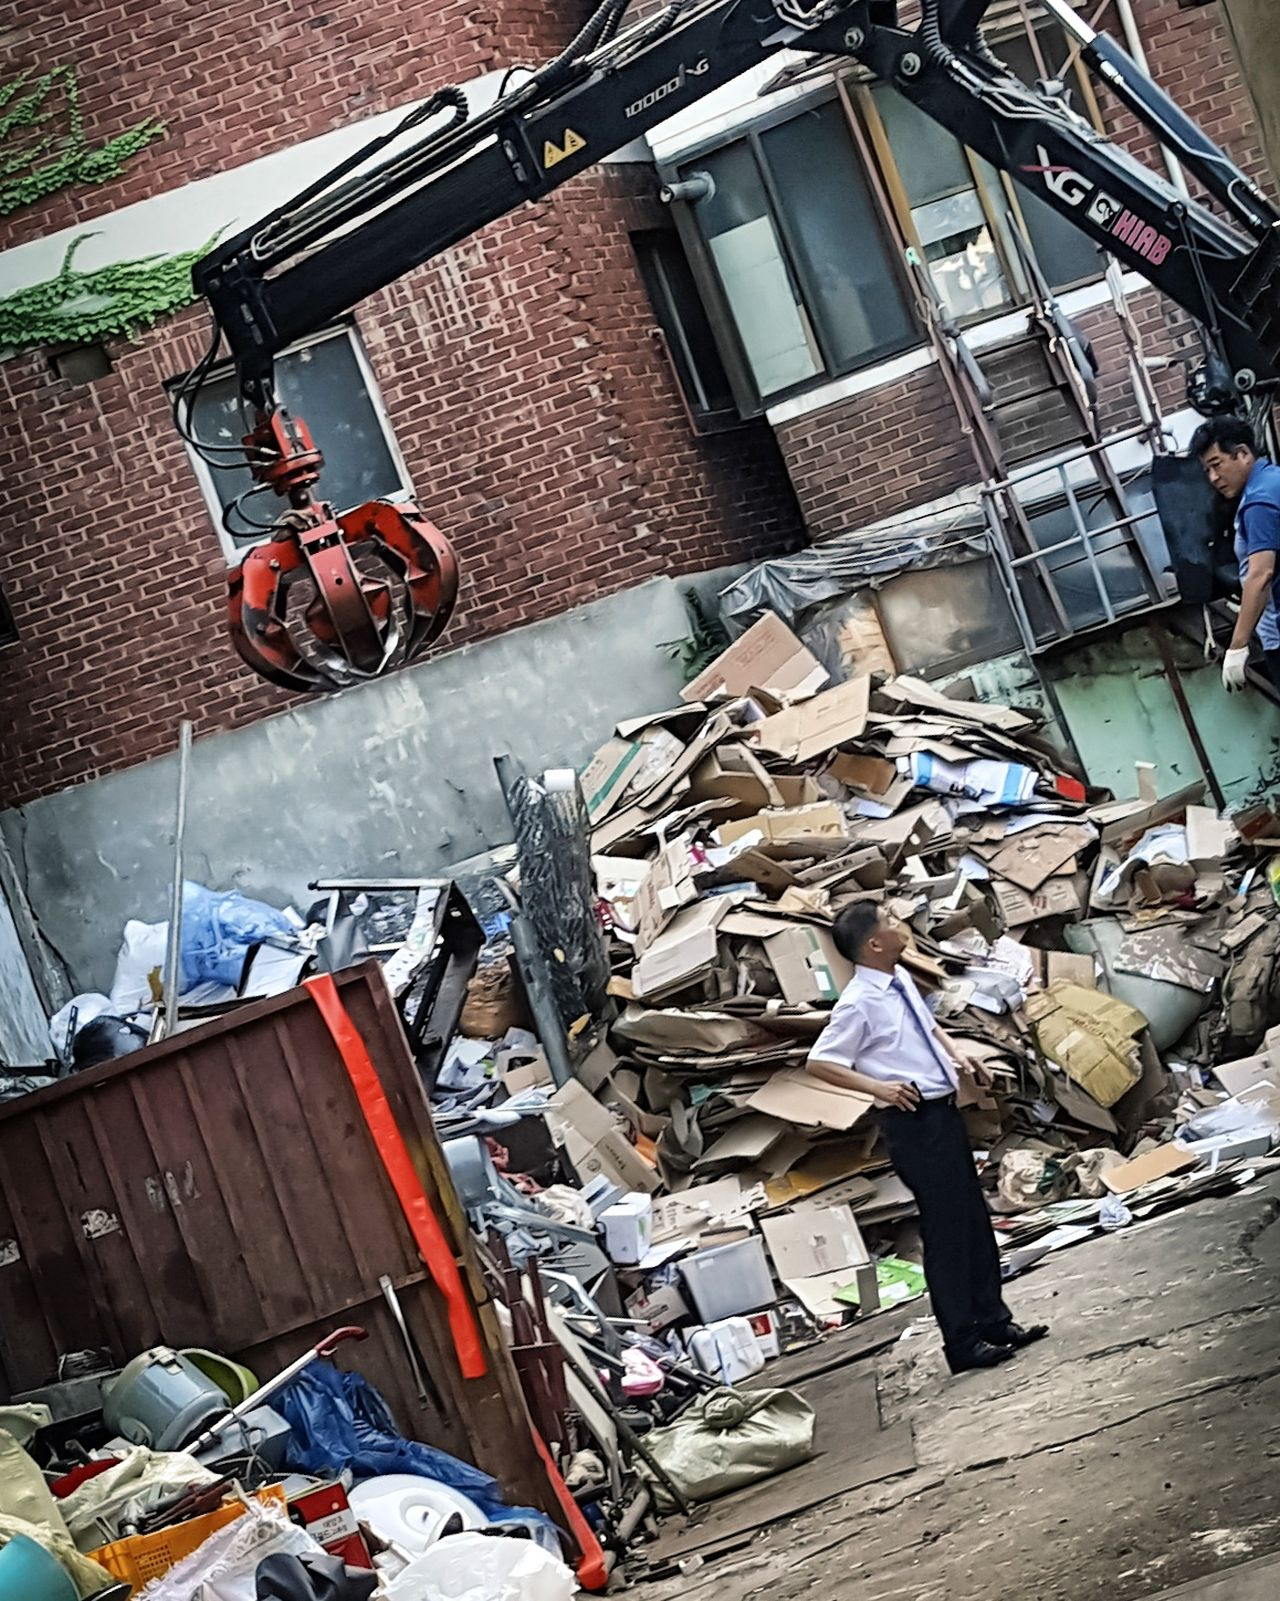 Dump Business Men Trash Too Much Stuff Seoul Korea Trash Day Travel Photography Young Adult Roads City Life Power Line  Scenics Transportation